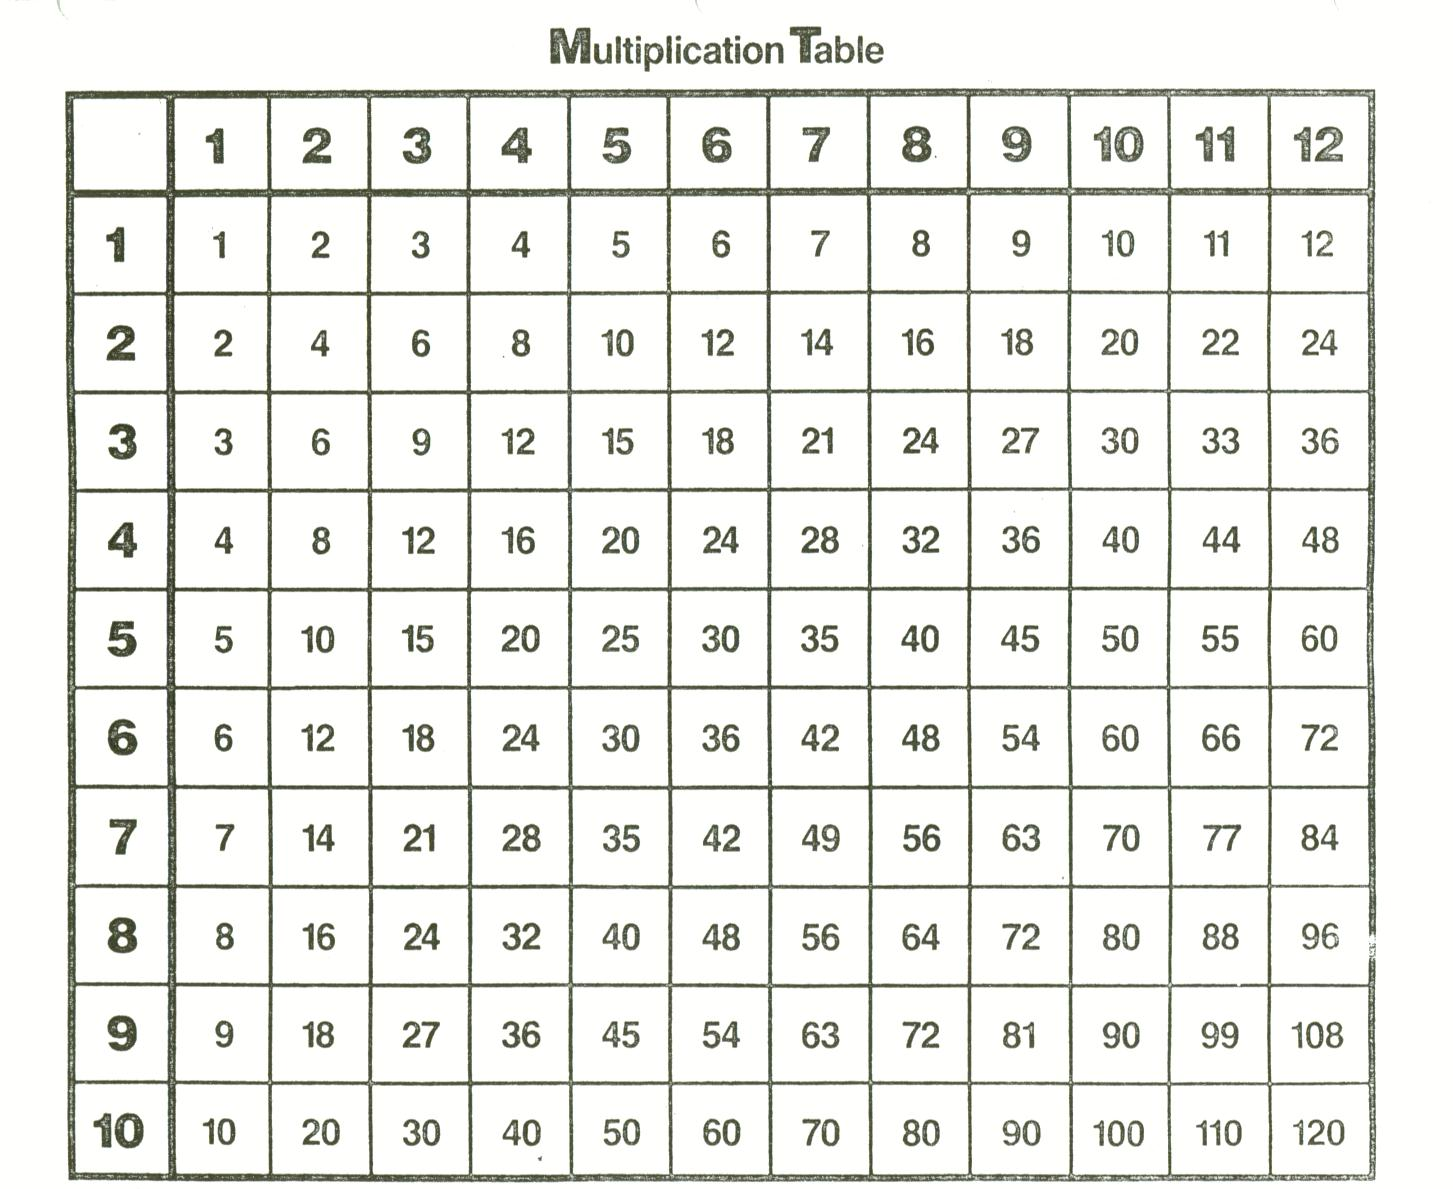 The gallery for multiplication table 100x100 for 1 to 100 times table chart